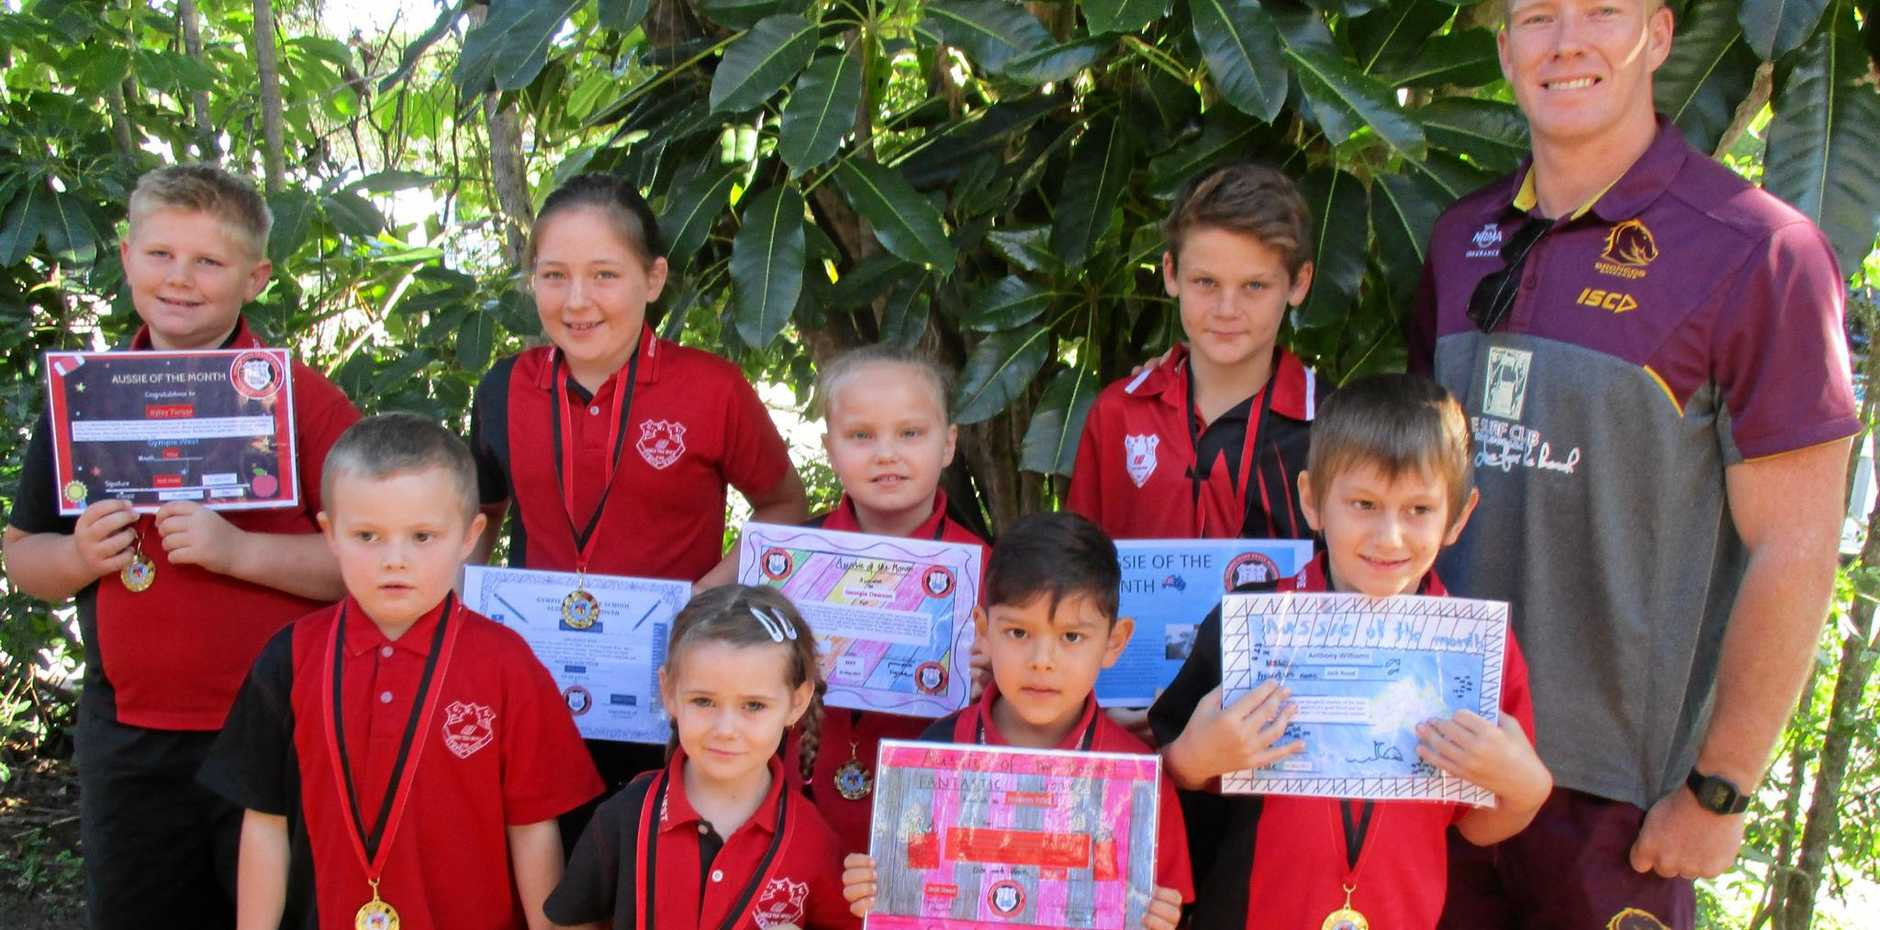 GREAT EFFORT: Former Bronco Jack Reed (right) with Gympie West Aussies of the Month (back from left) Ryley Turner, Olivia Lesslie, Georgie Dawson, Duey Barry, (front) Joseph Wickham, Kaelee Faint, Hudson Prisk and Anthony Williams.